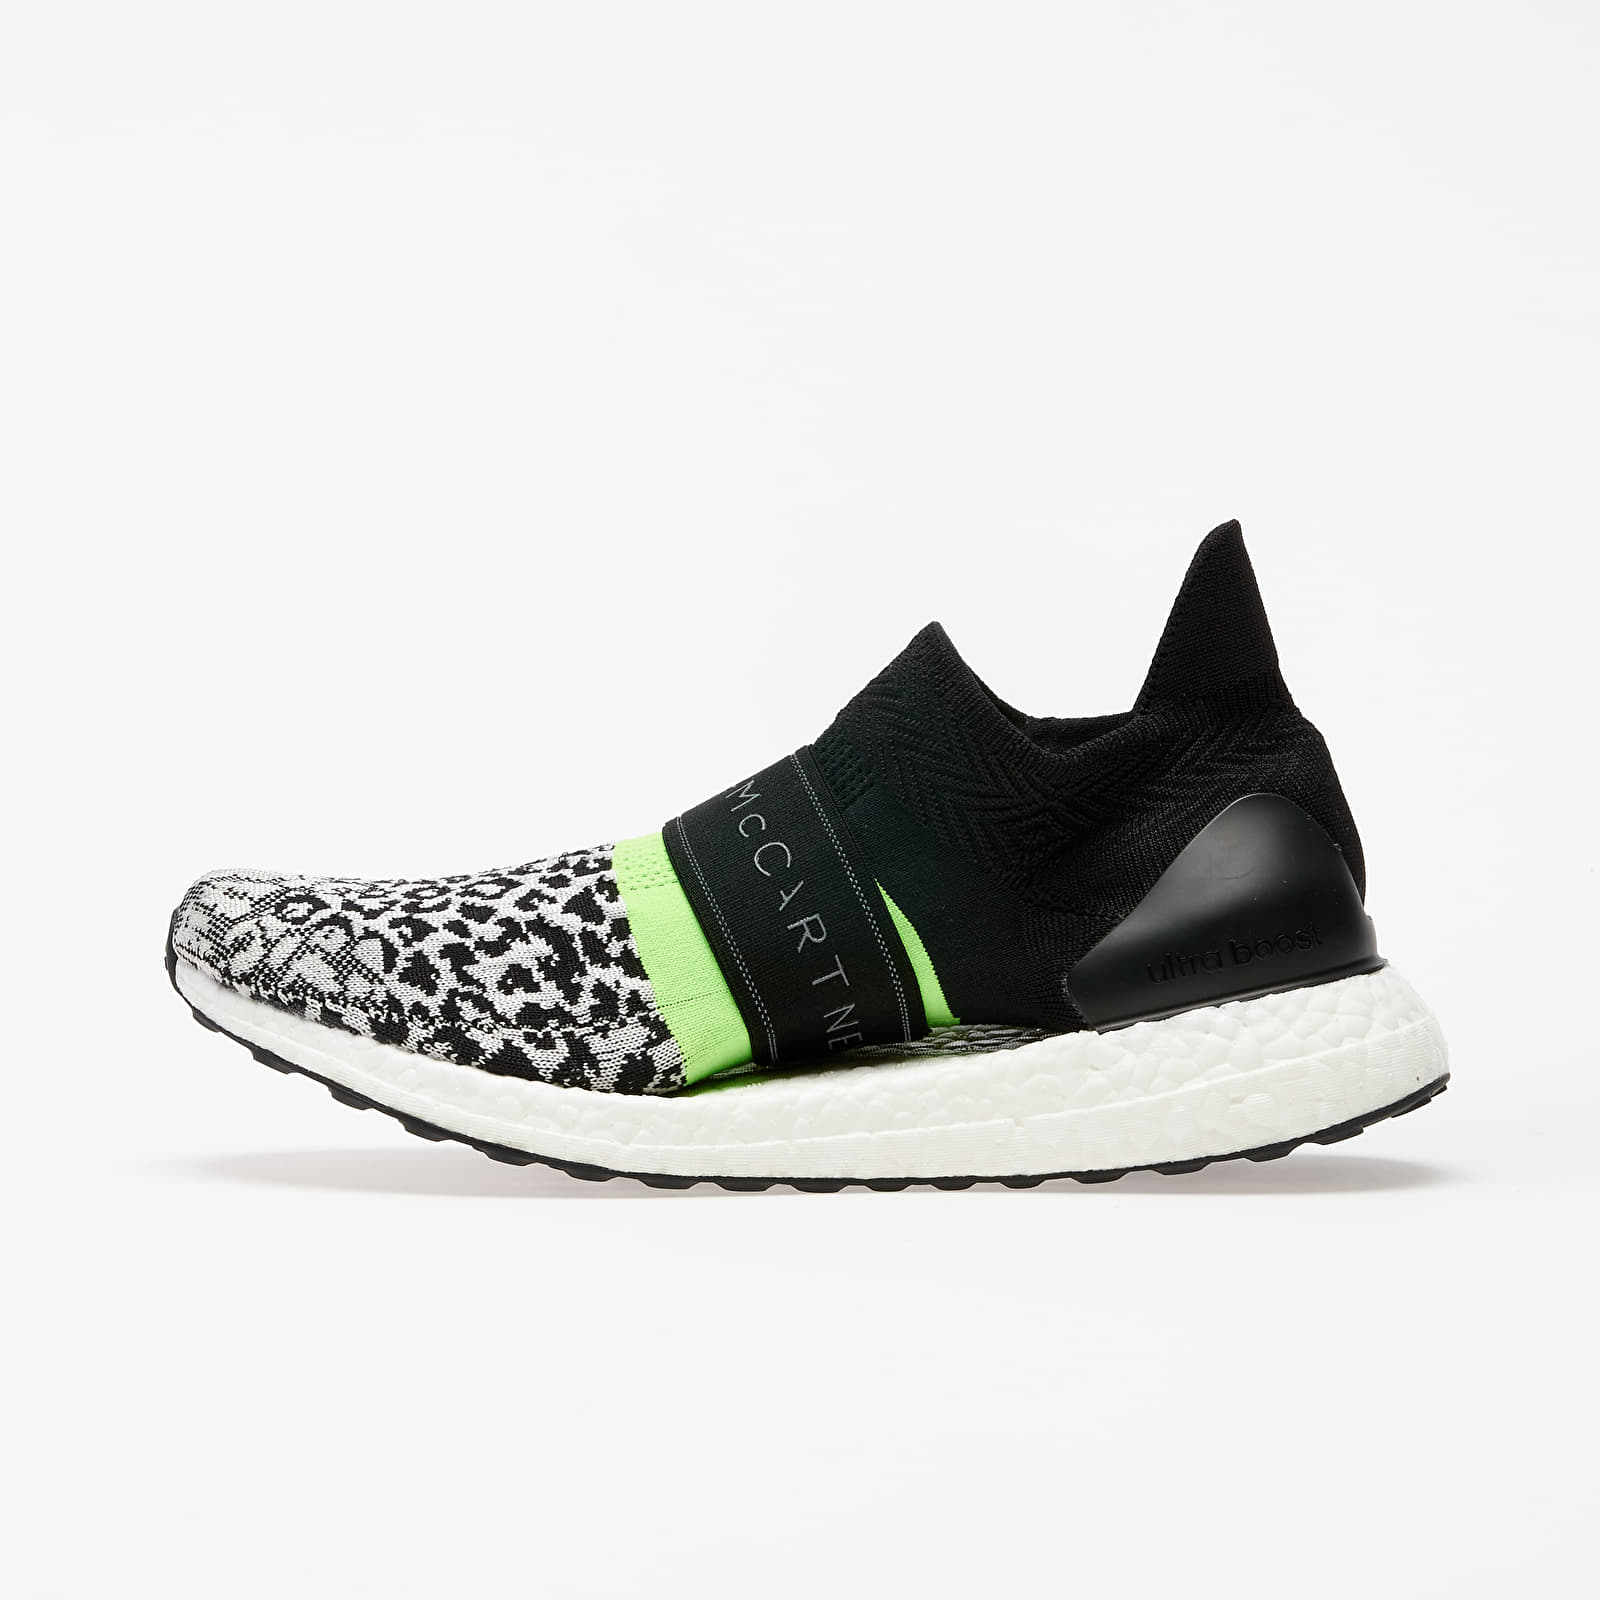 Frauen adidas x Stella McCartney UltraBOOST X 3.D. S. Black-White/ Core White/ Solar Green